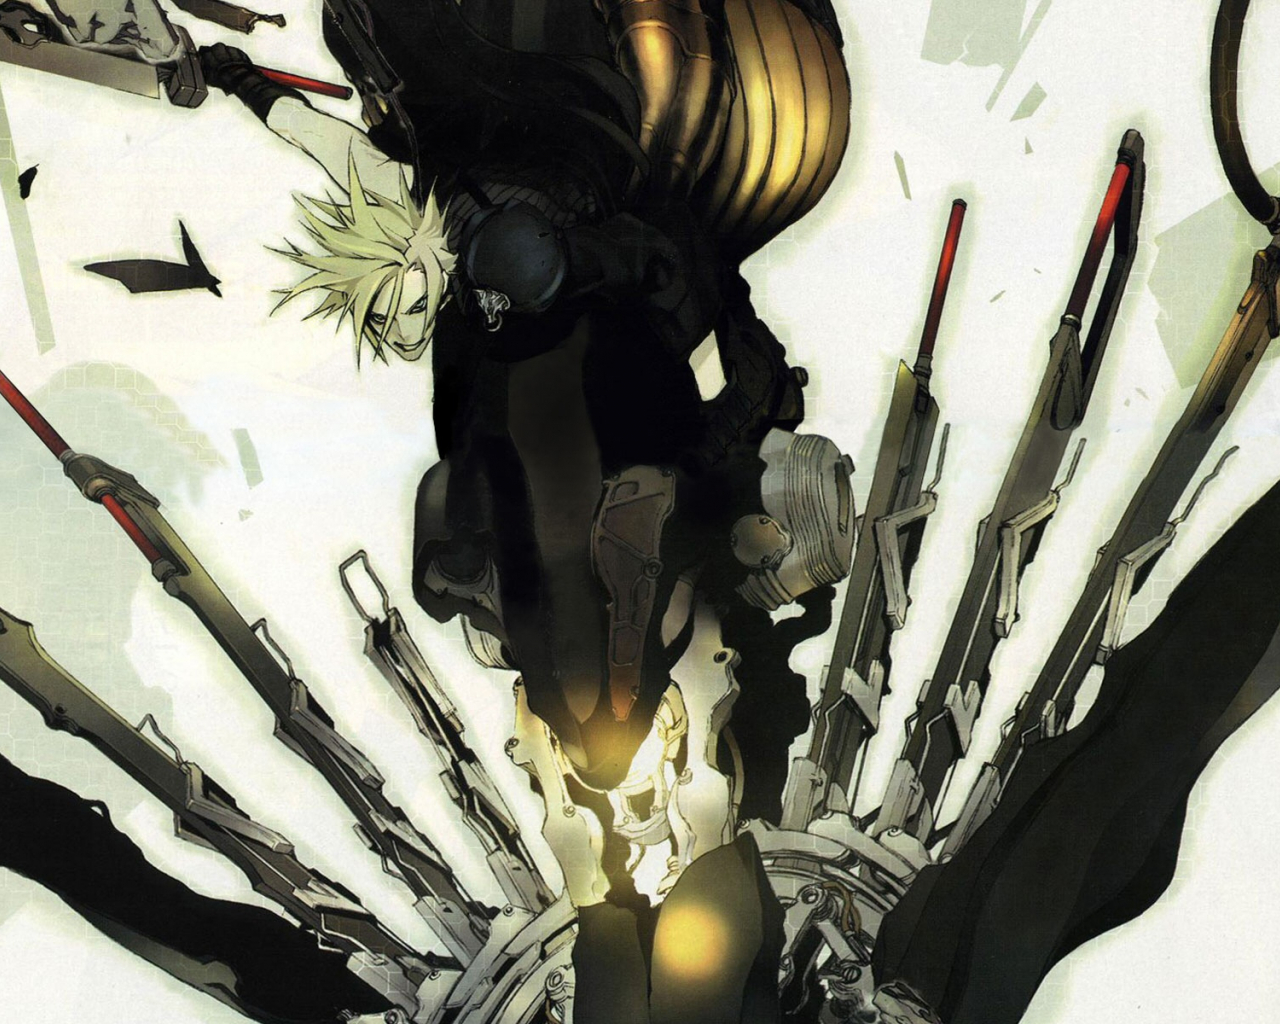 1600x1200px final fantasy 7 advent children wallpaper - wallpapersafari